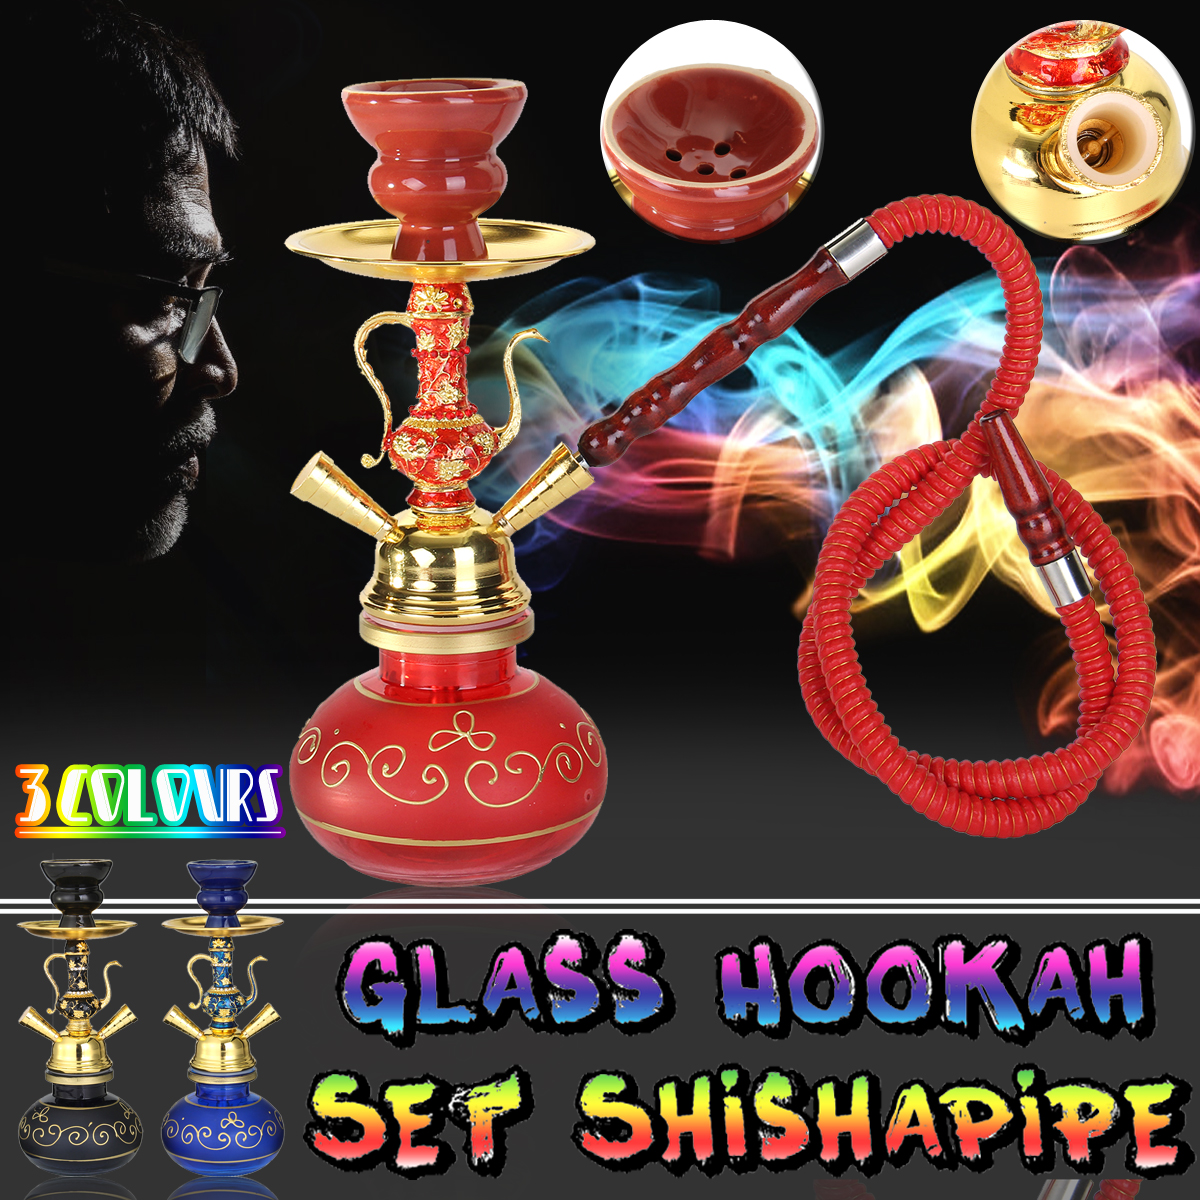 Glass Water Vase Glass Hookahs Shisha Bottles Nargila Bar Bowl Narguile Pipe